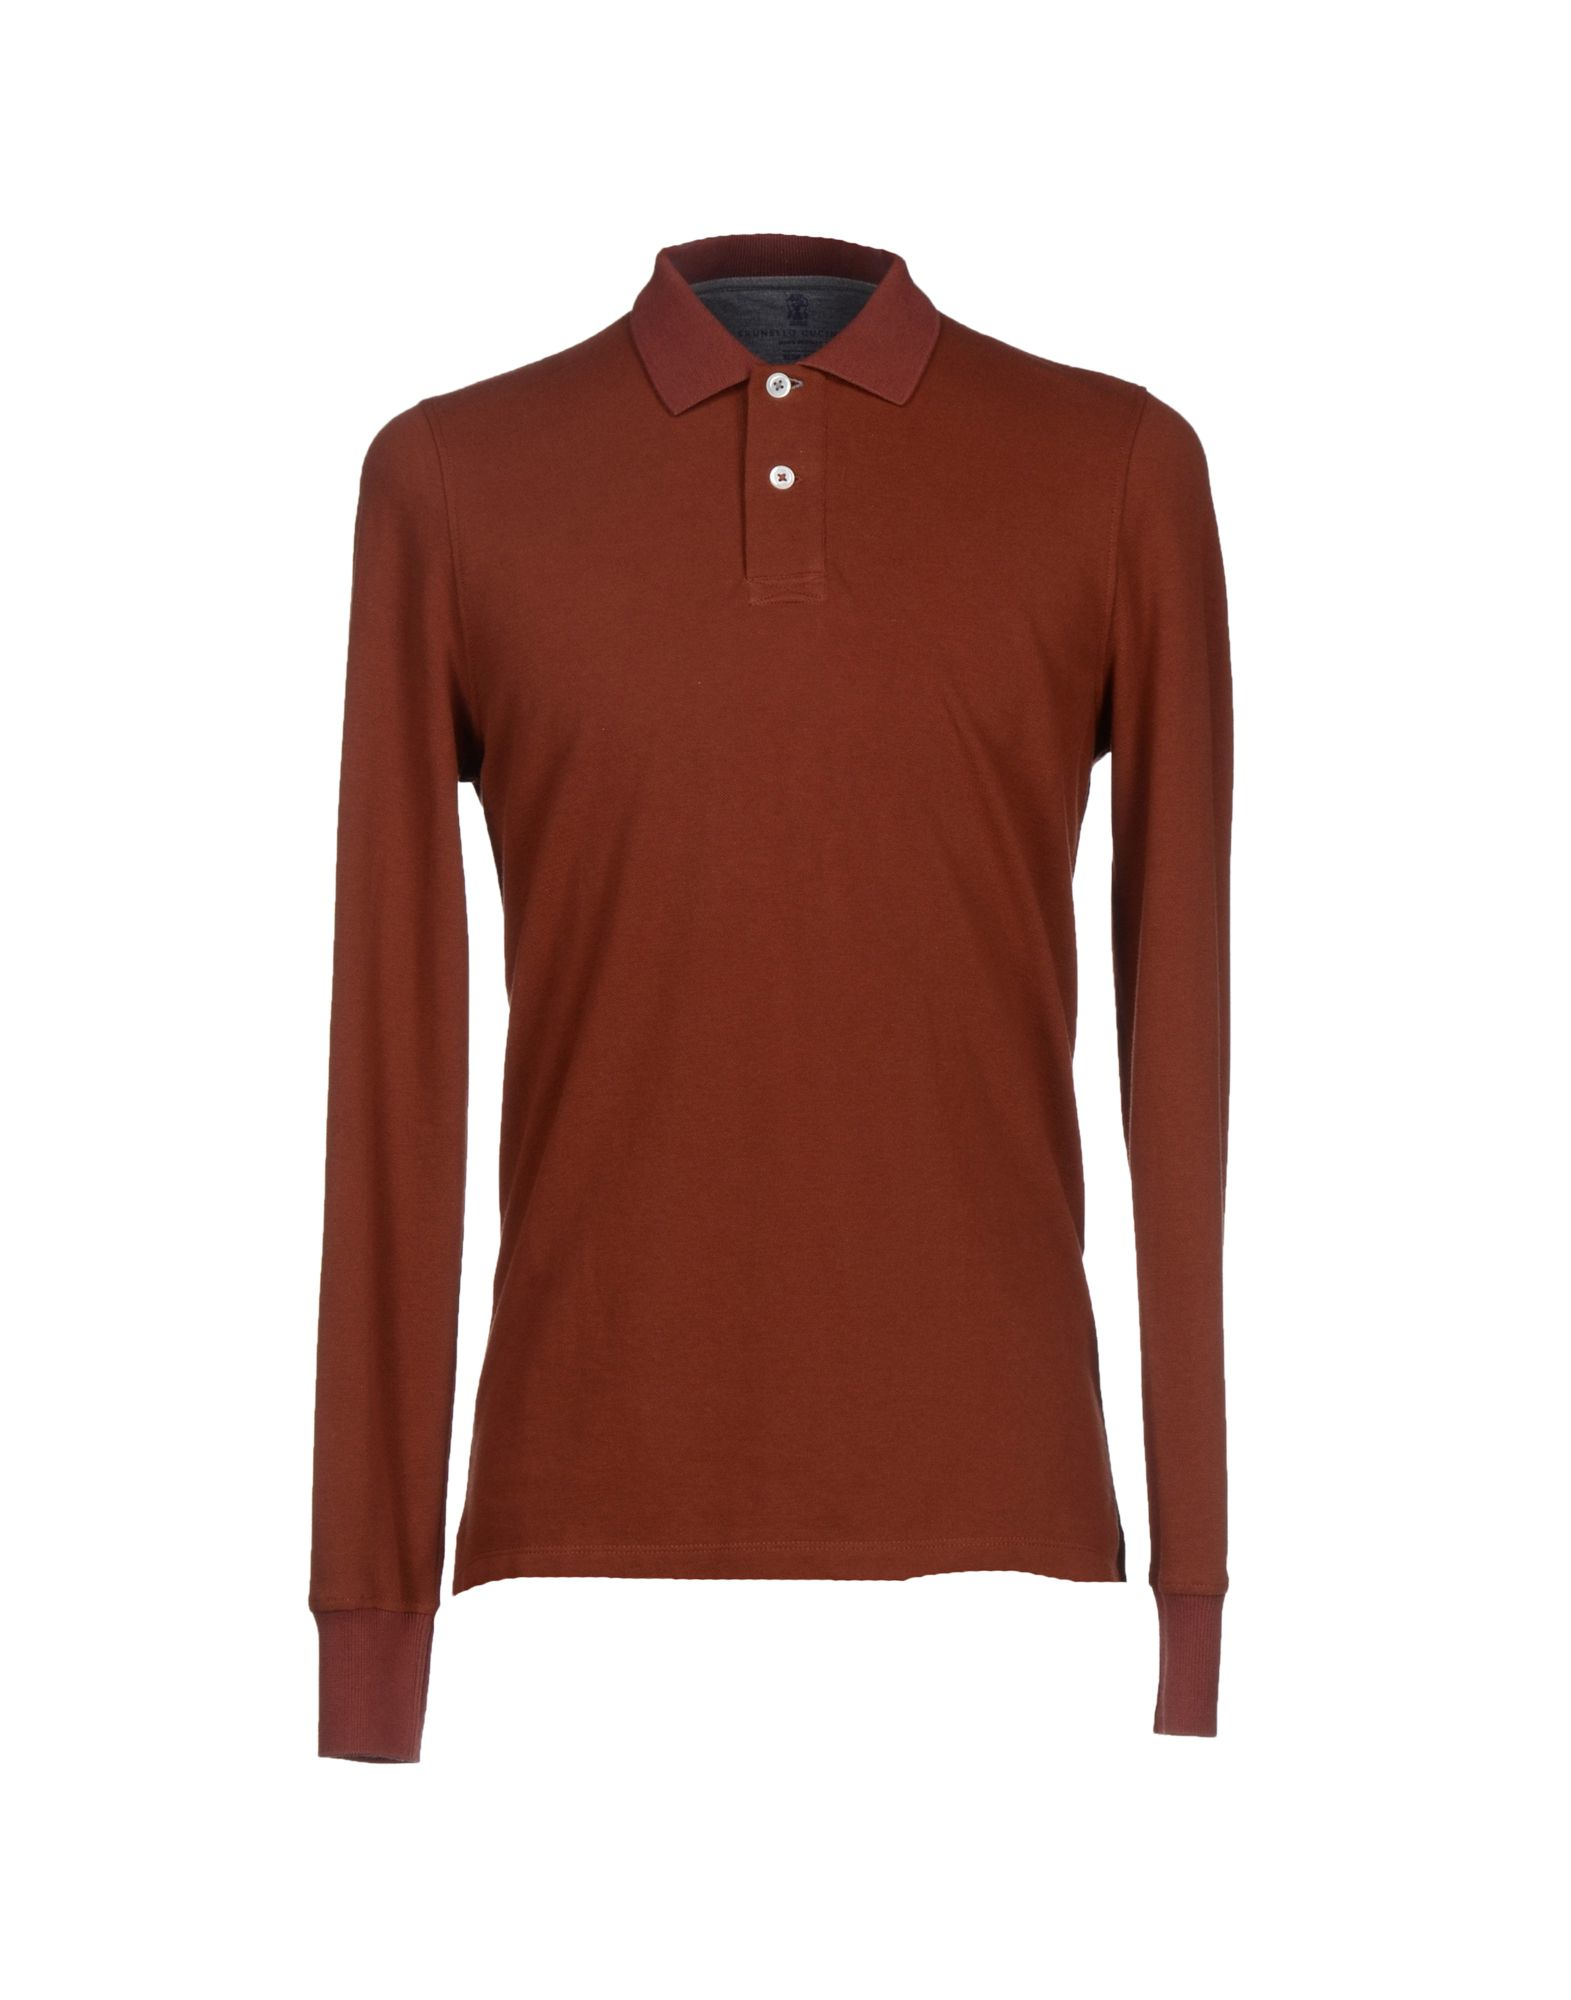 Brunello Cucinelli Polo Shirt In Brown For Men Lyst